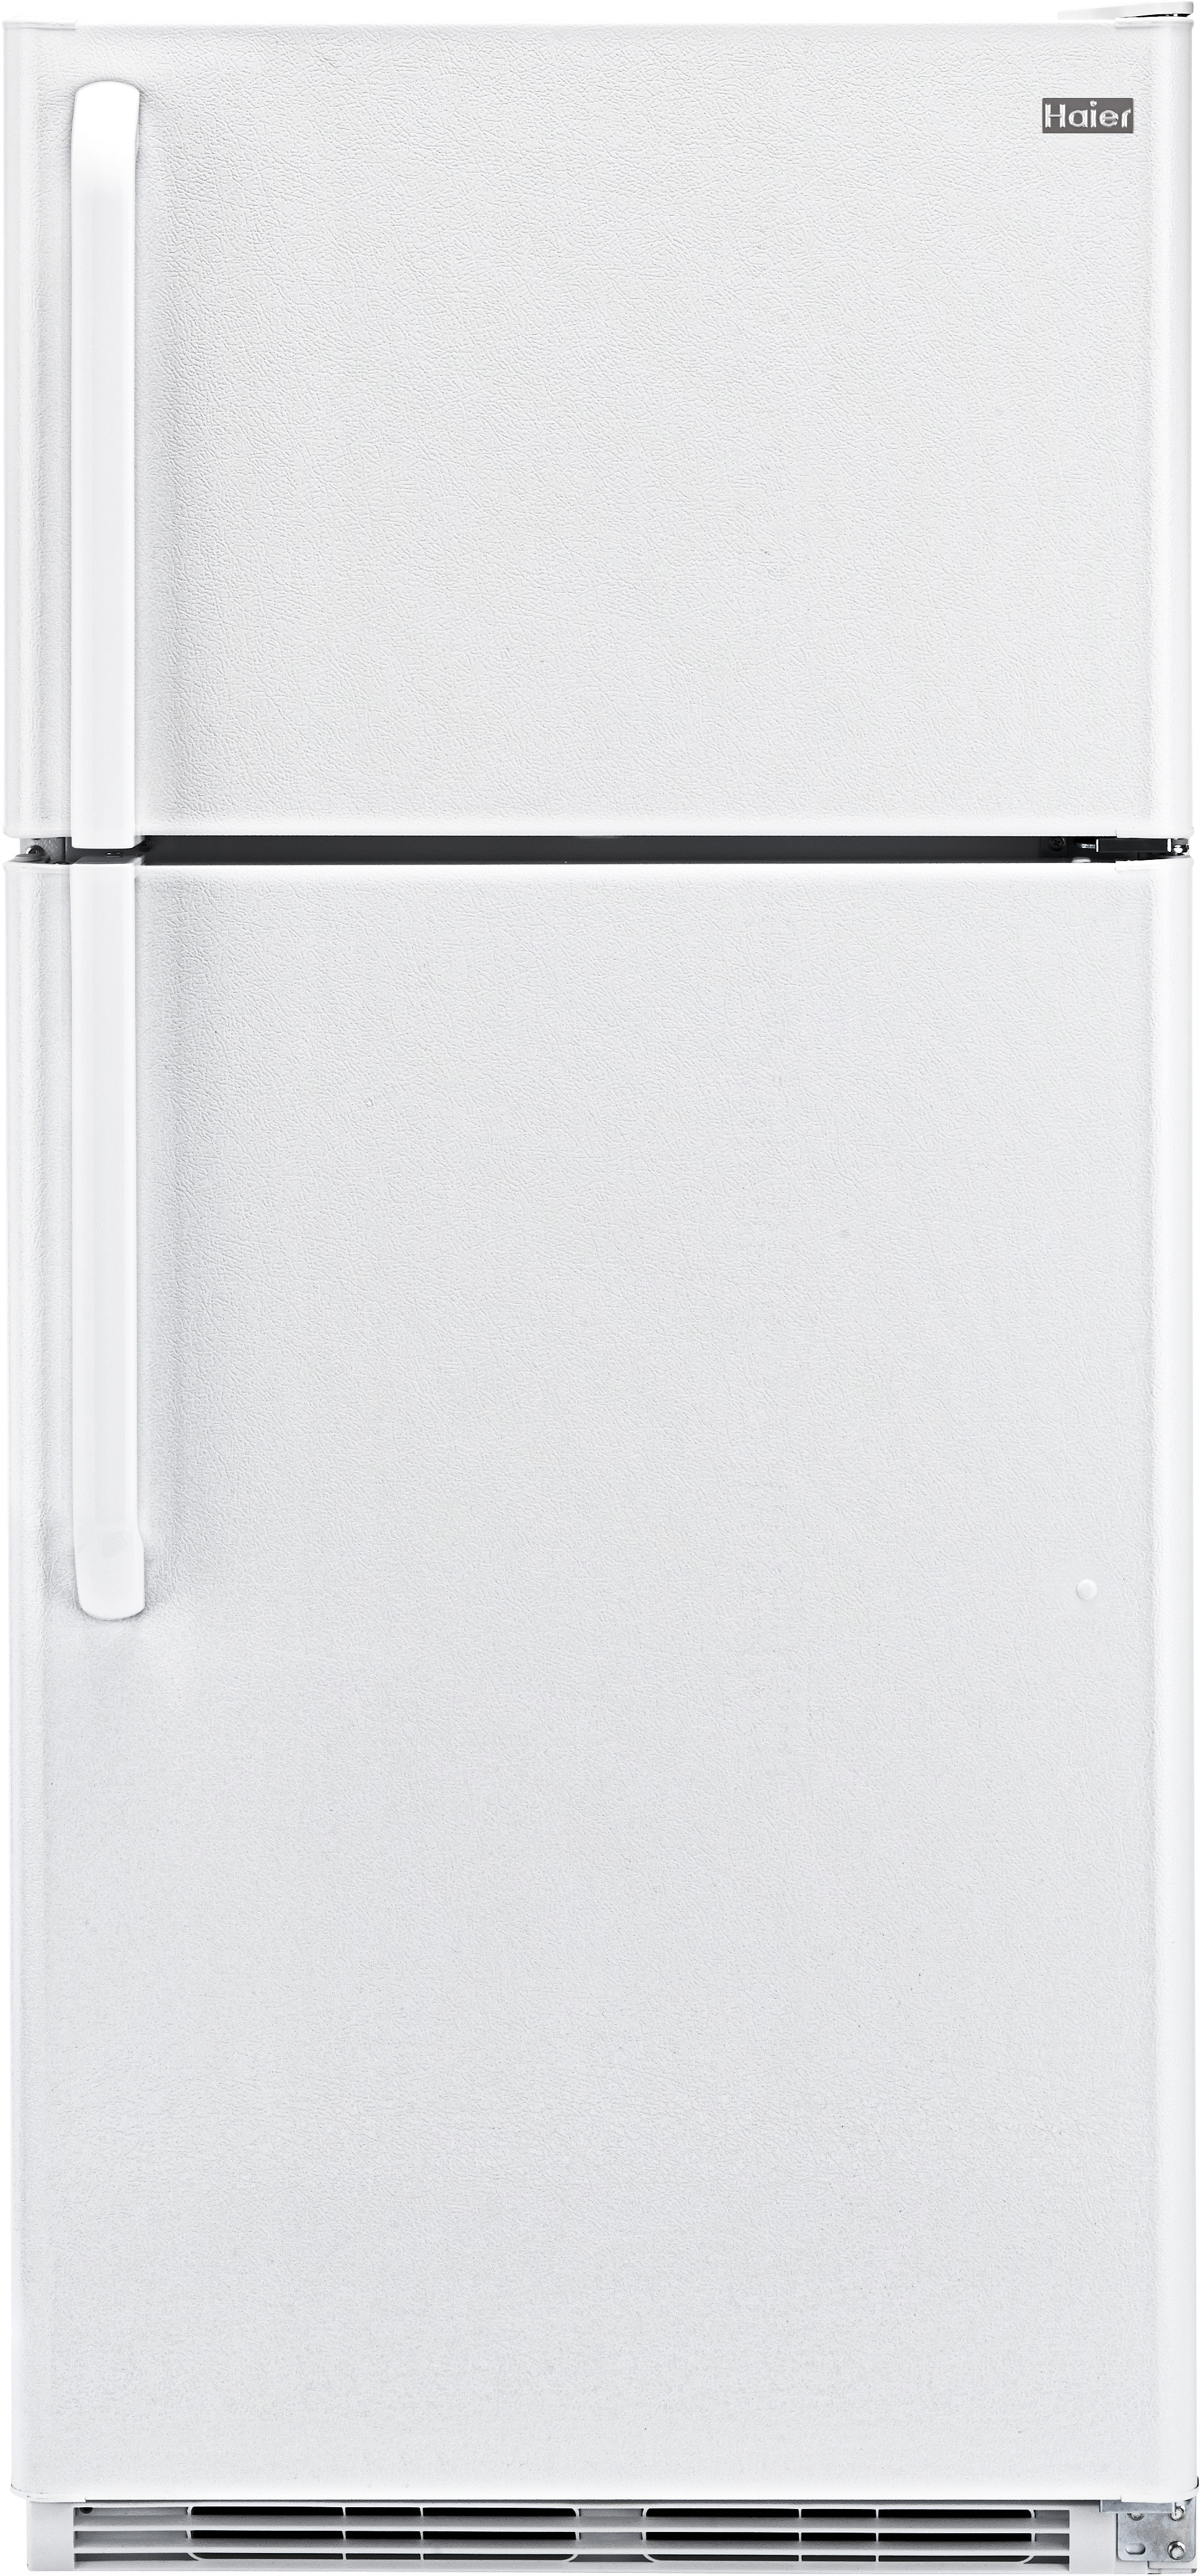 Haier HRT18R1APW 18.1 cu. ft. Top Mount Refrigerator with